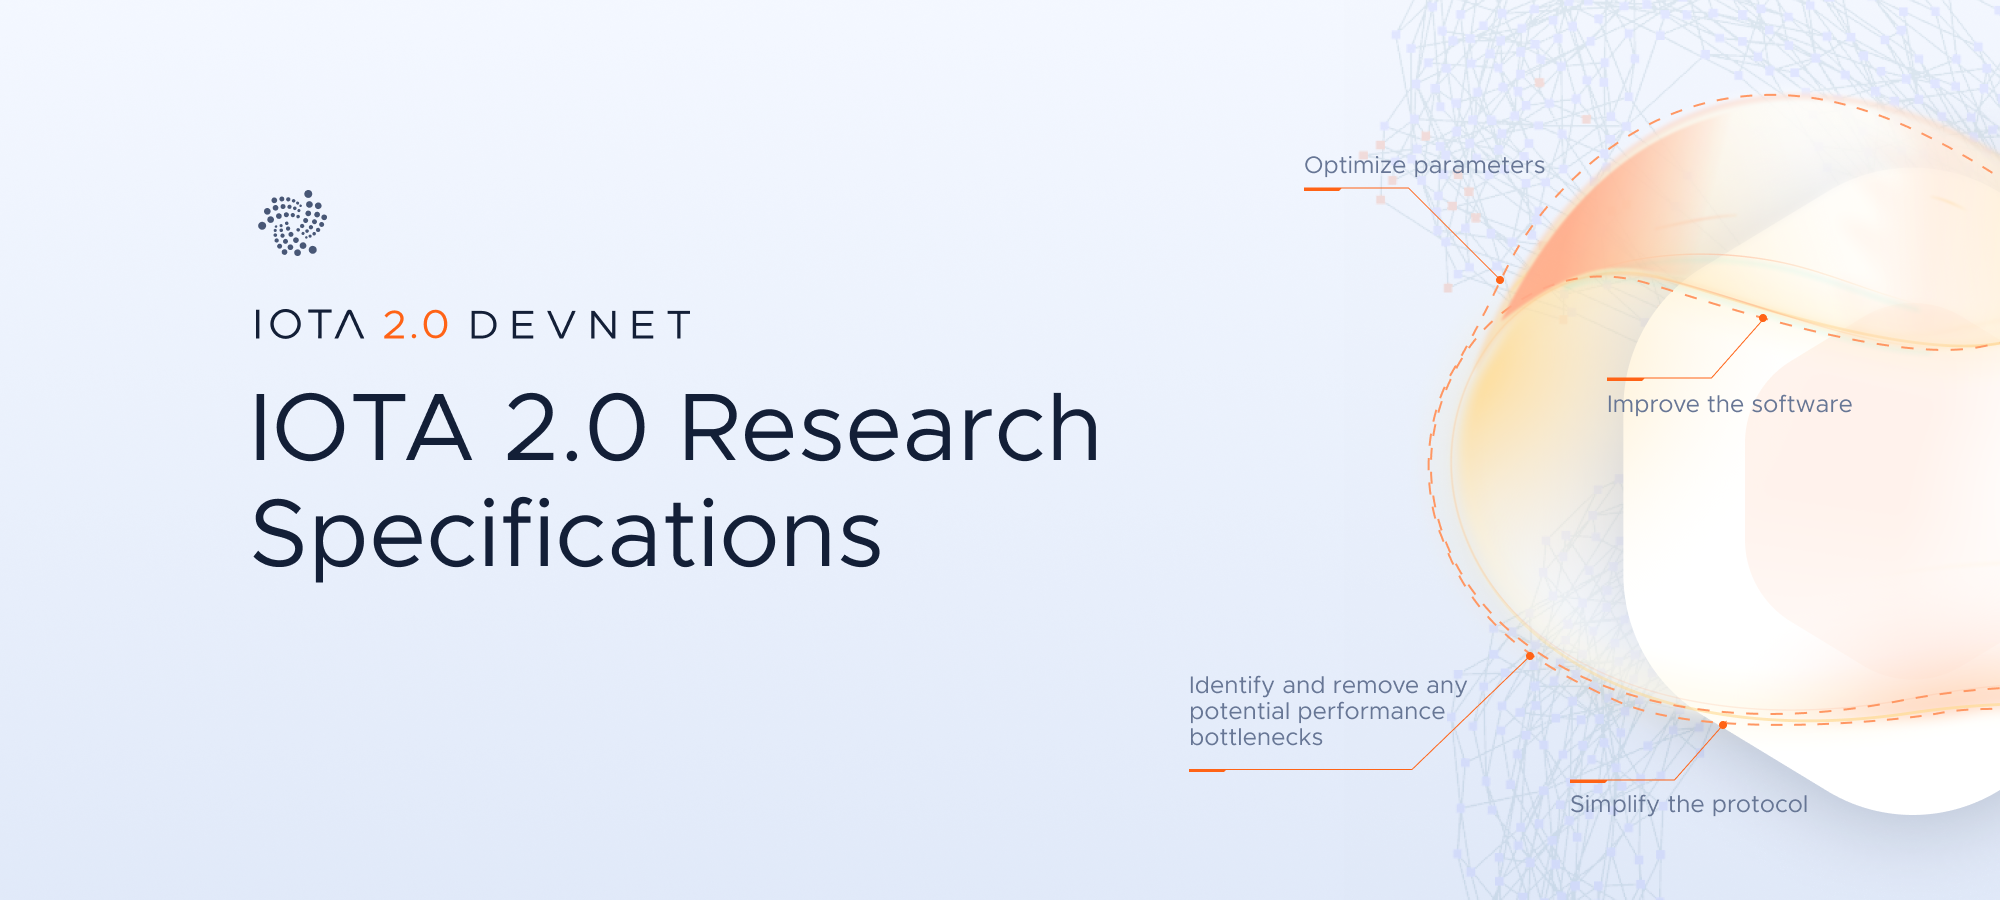 IOTA 2.0 Research Specifications